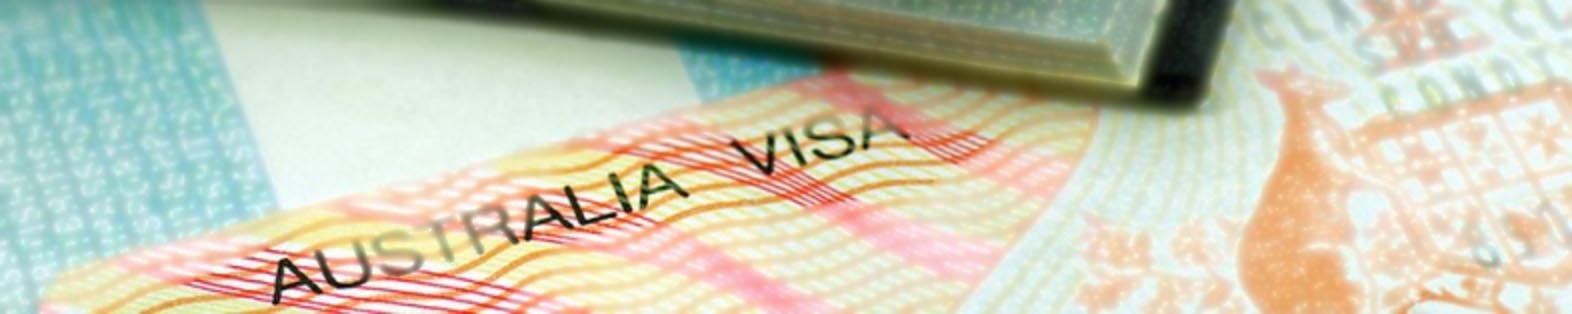 Student Visa Cancellation in Australia - NepaliPage